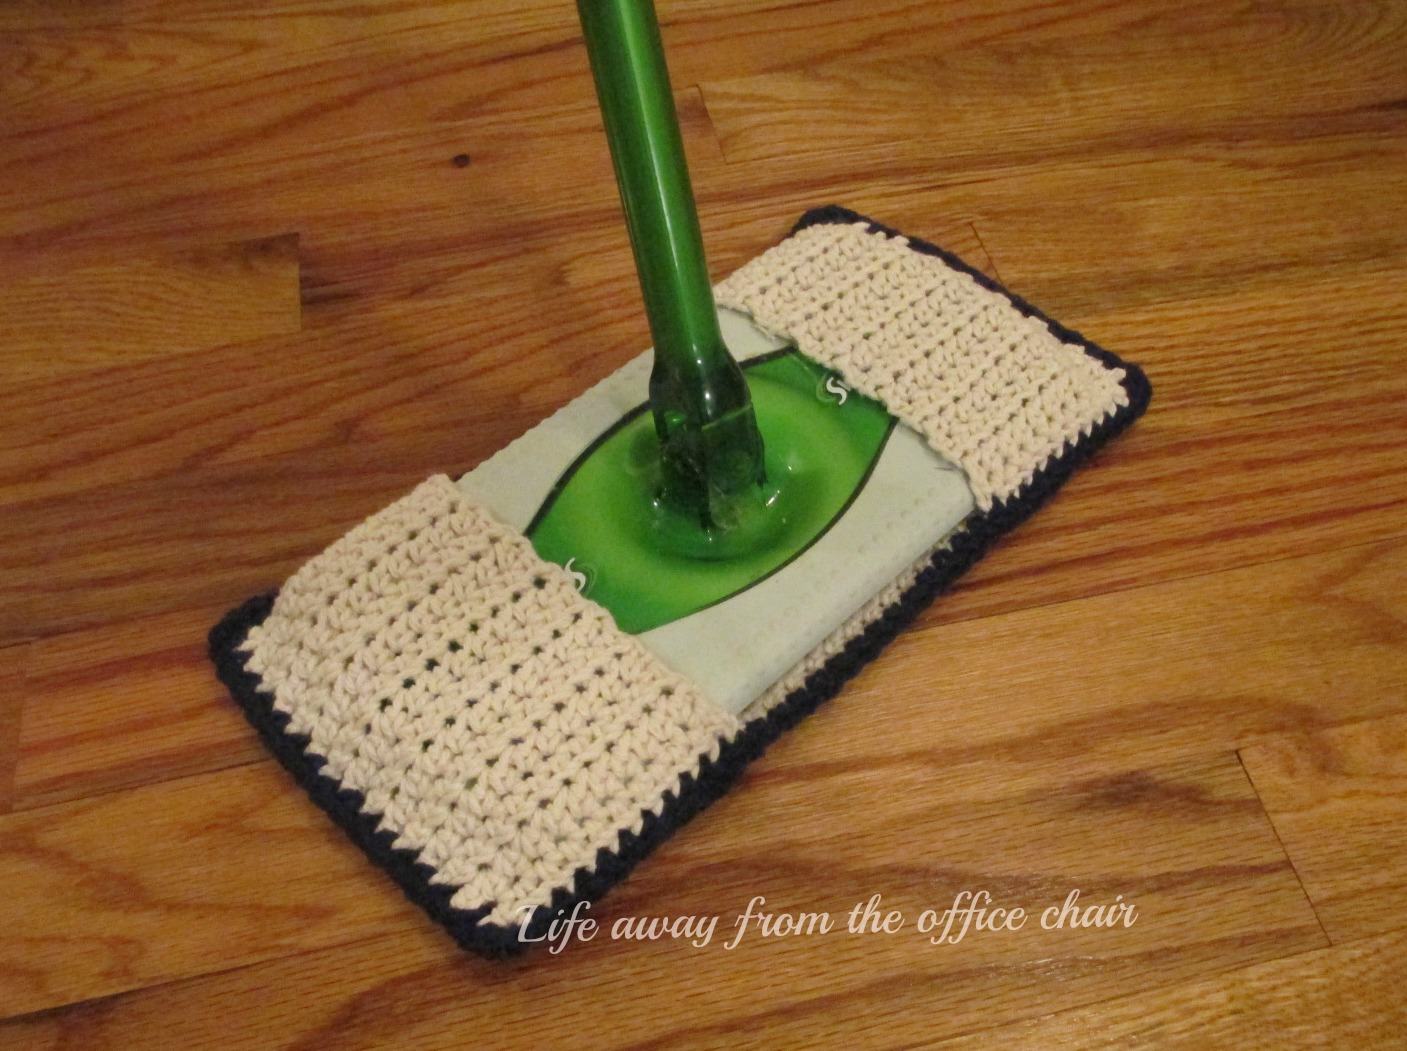 Crochet Swiffer Pad Pattern Life Away From The Office Chair